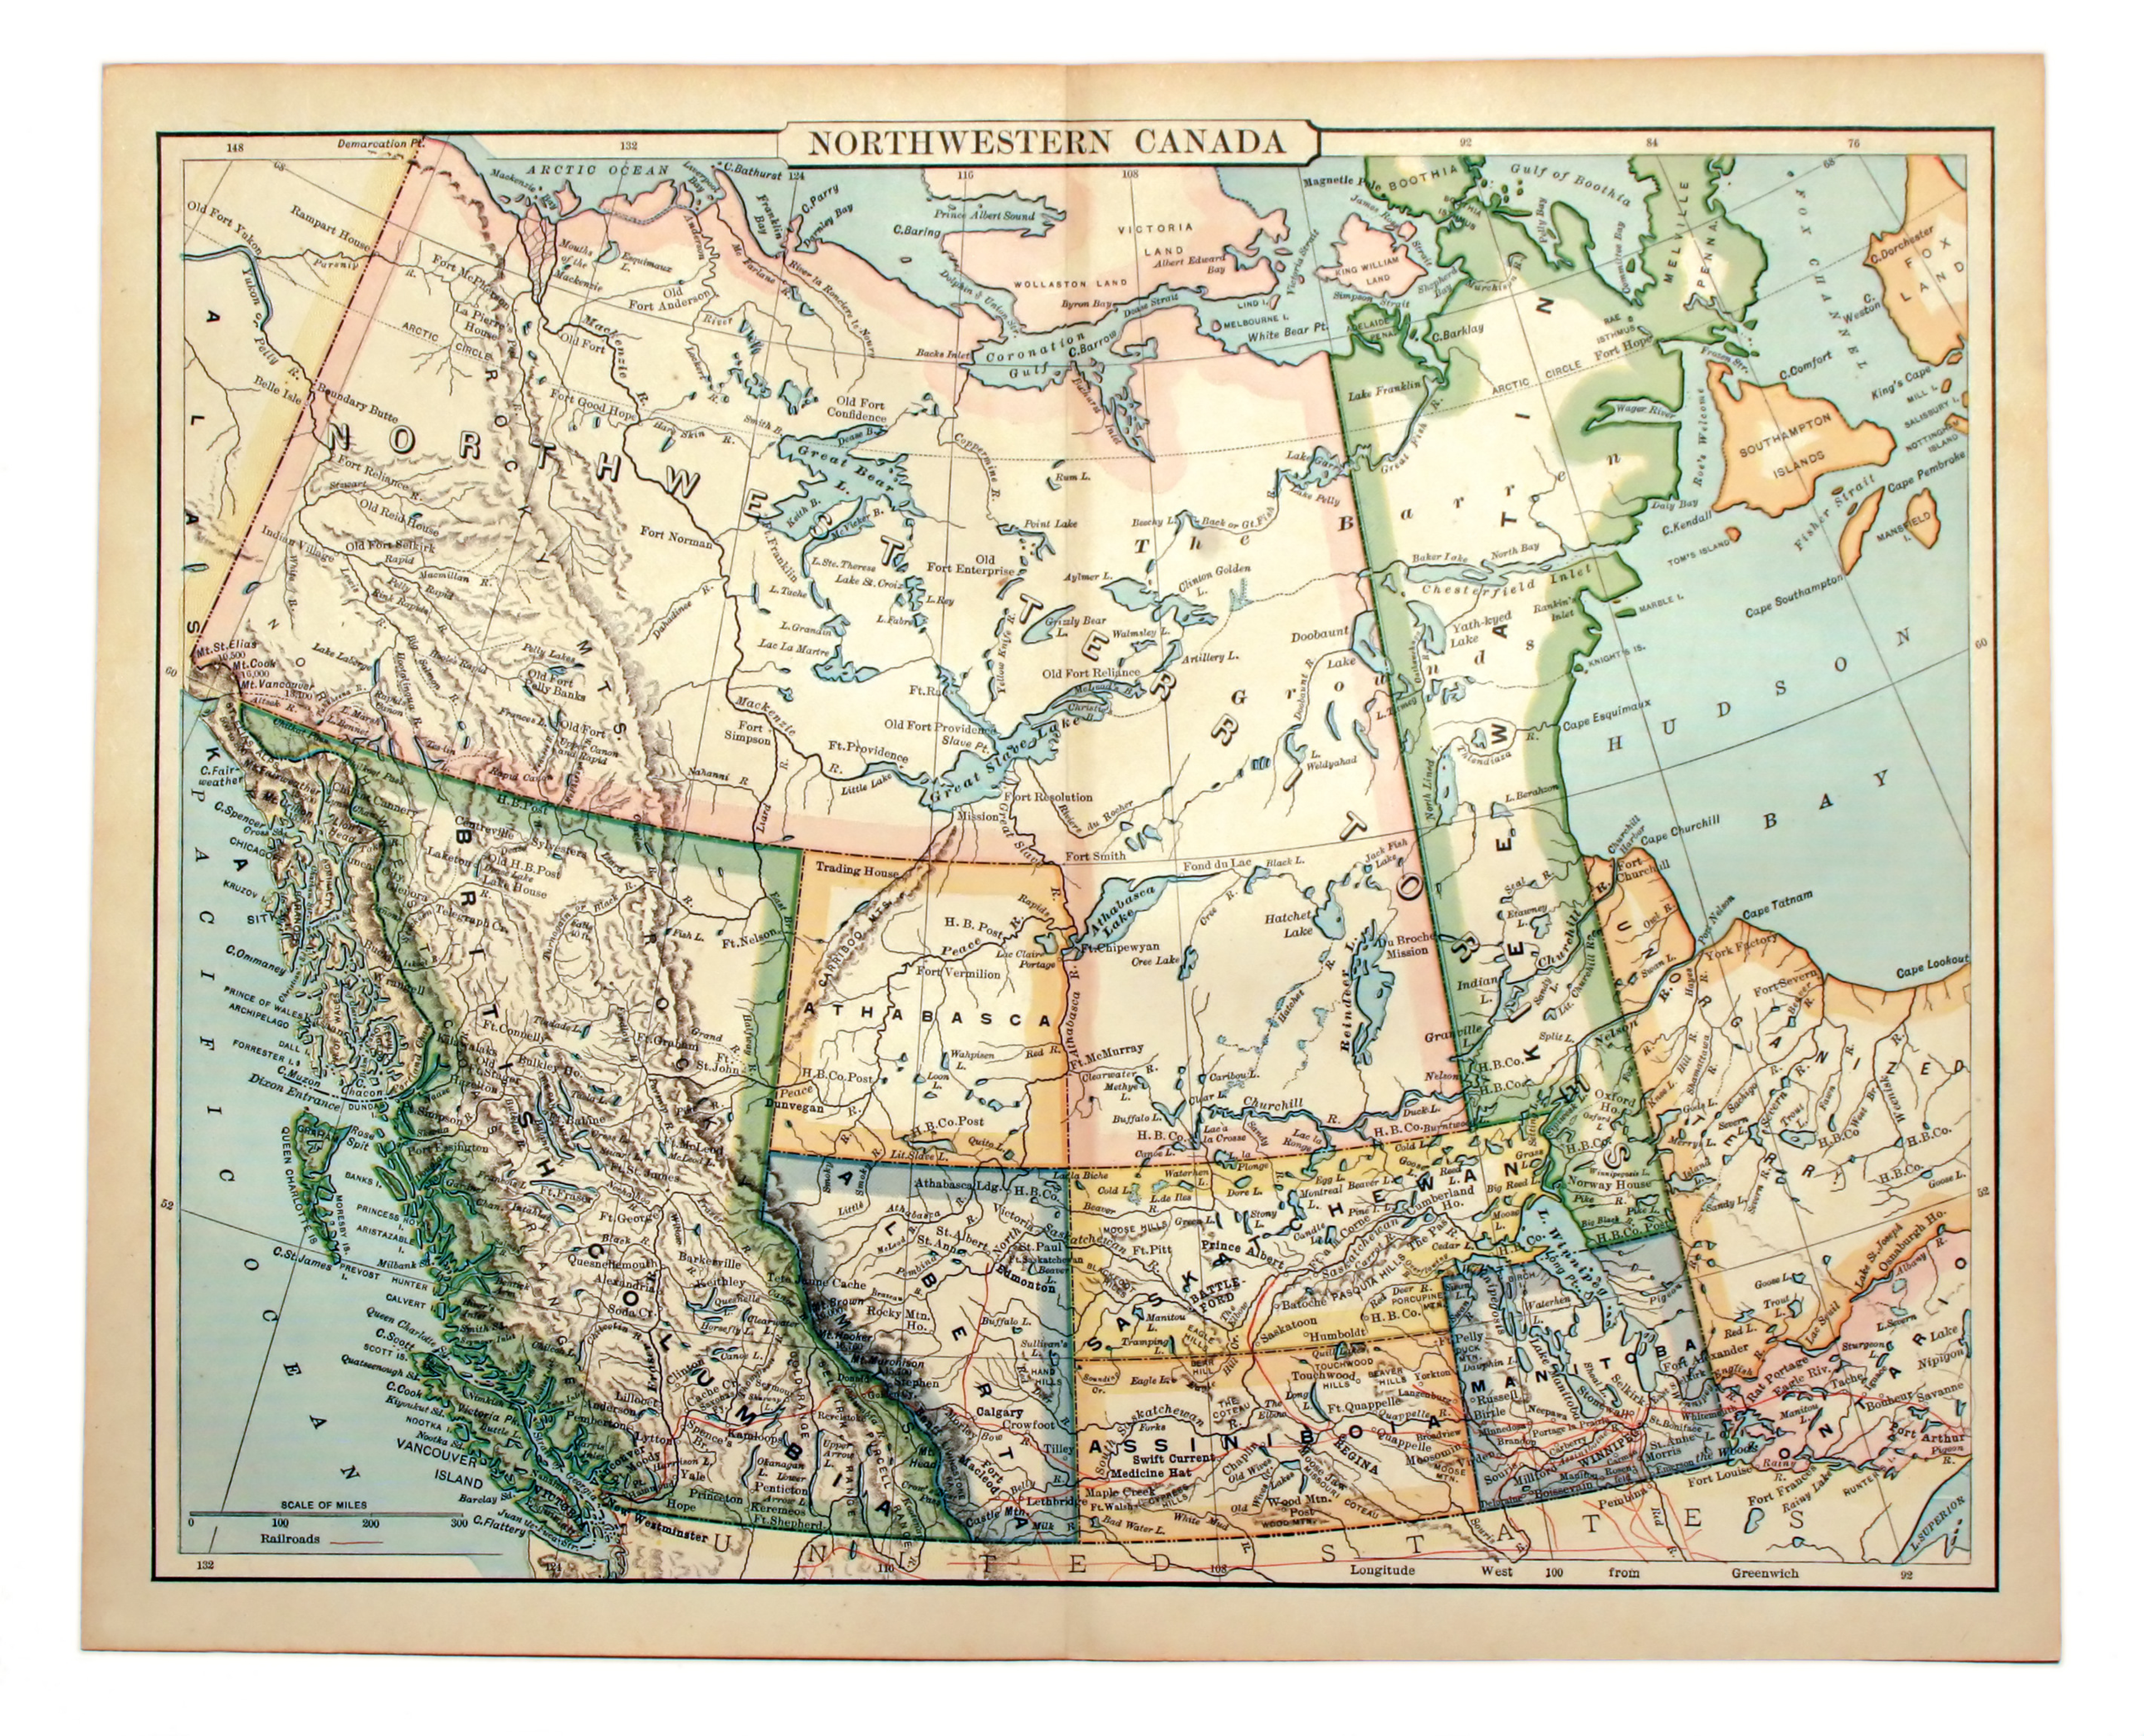 a post confederation map of canada c 1889 1895 depicting the districts of keewatin assiniboia saskatchewan and alberta as well as the north west